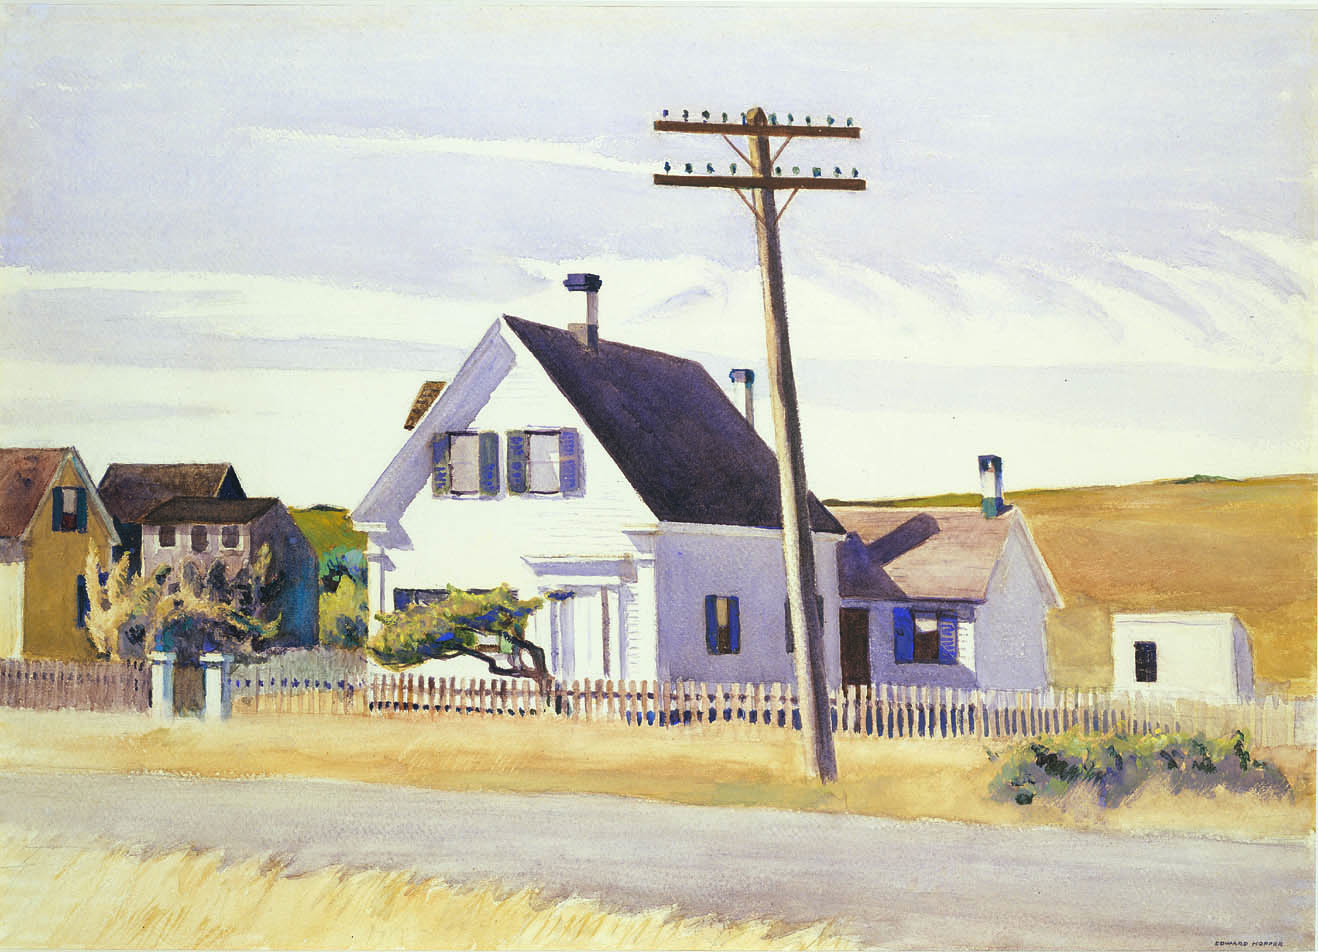 EDWARD HOPPER (1882-1967)